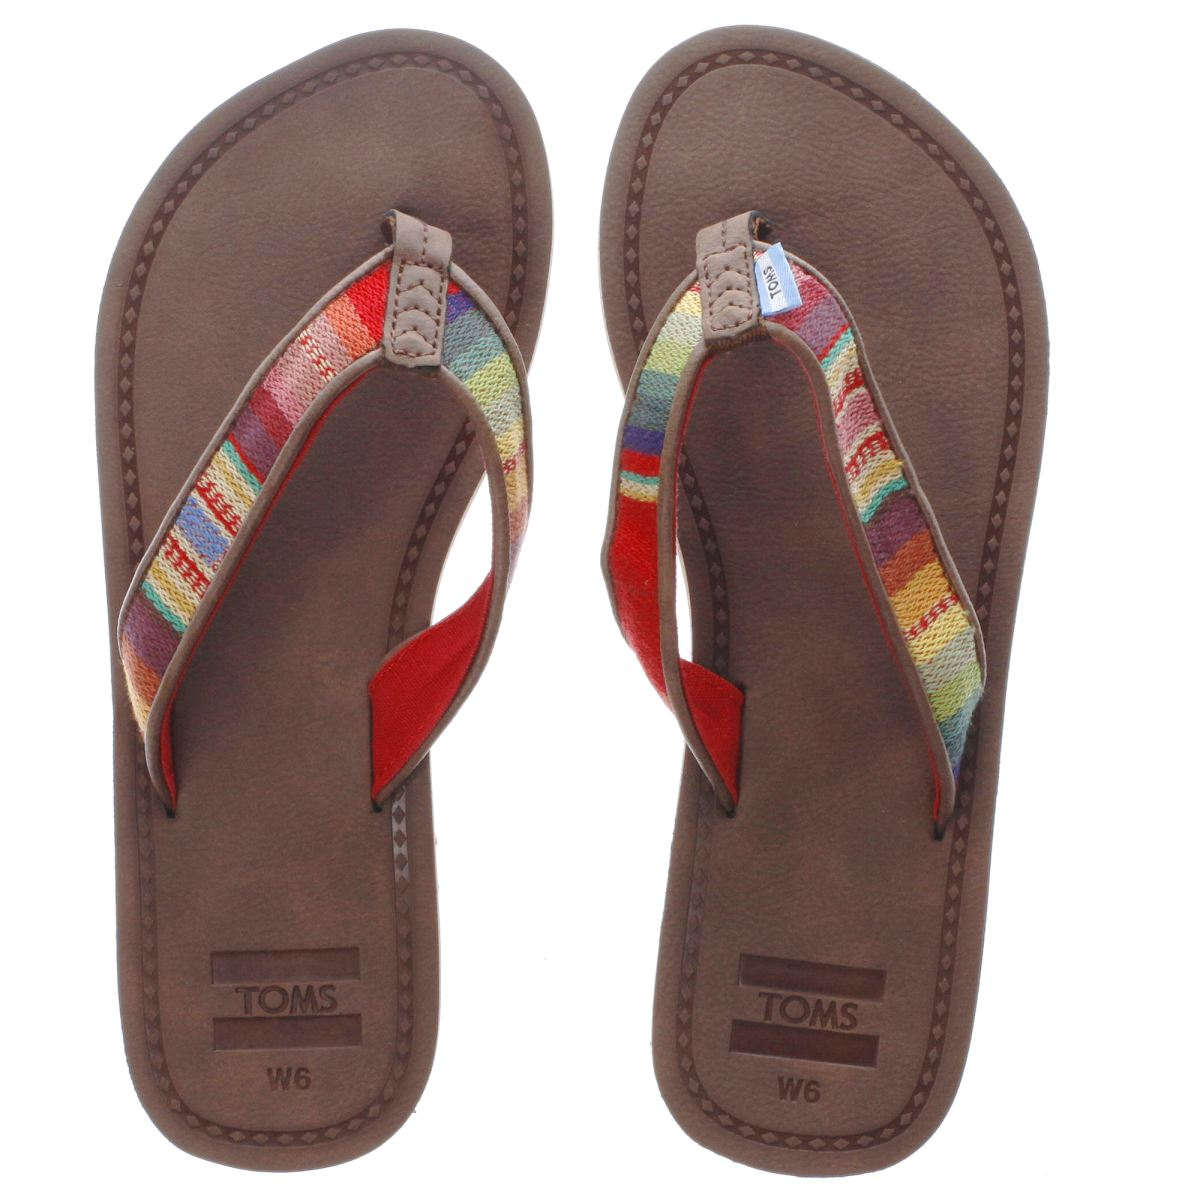 toms brown solana flip flop sandals